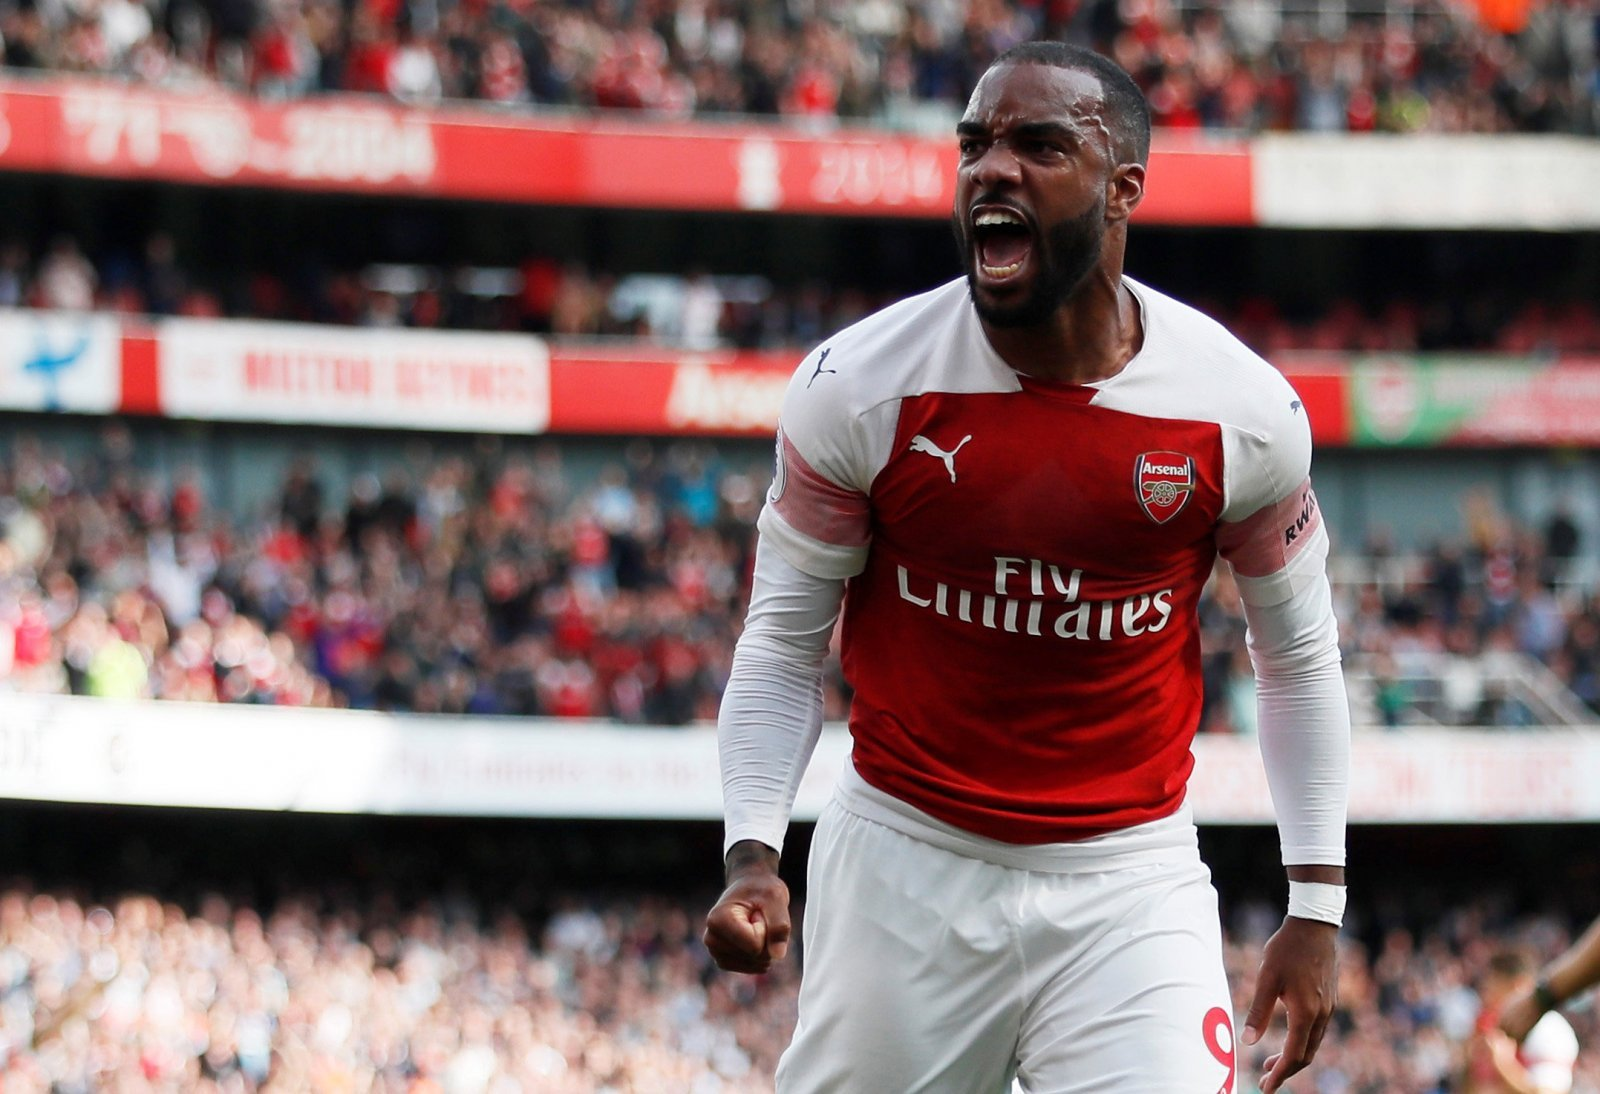 Arsenal fans on Twitter see the positives in Lacazette's France snub